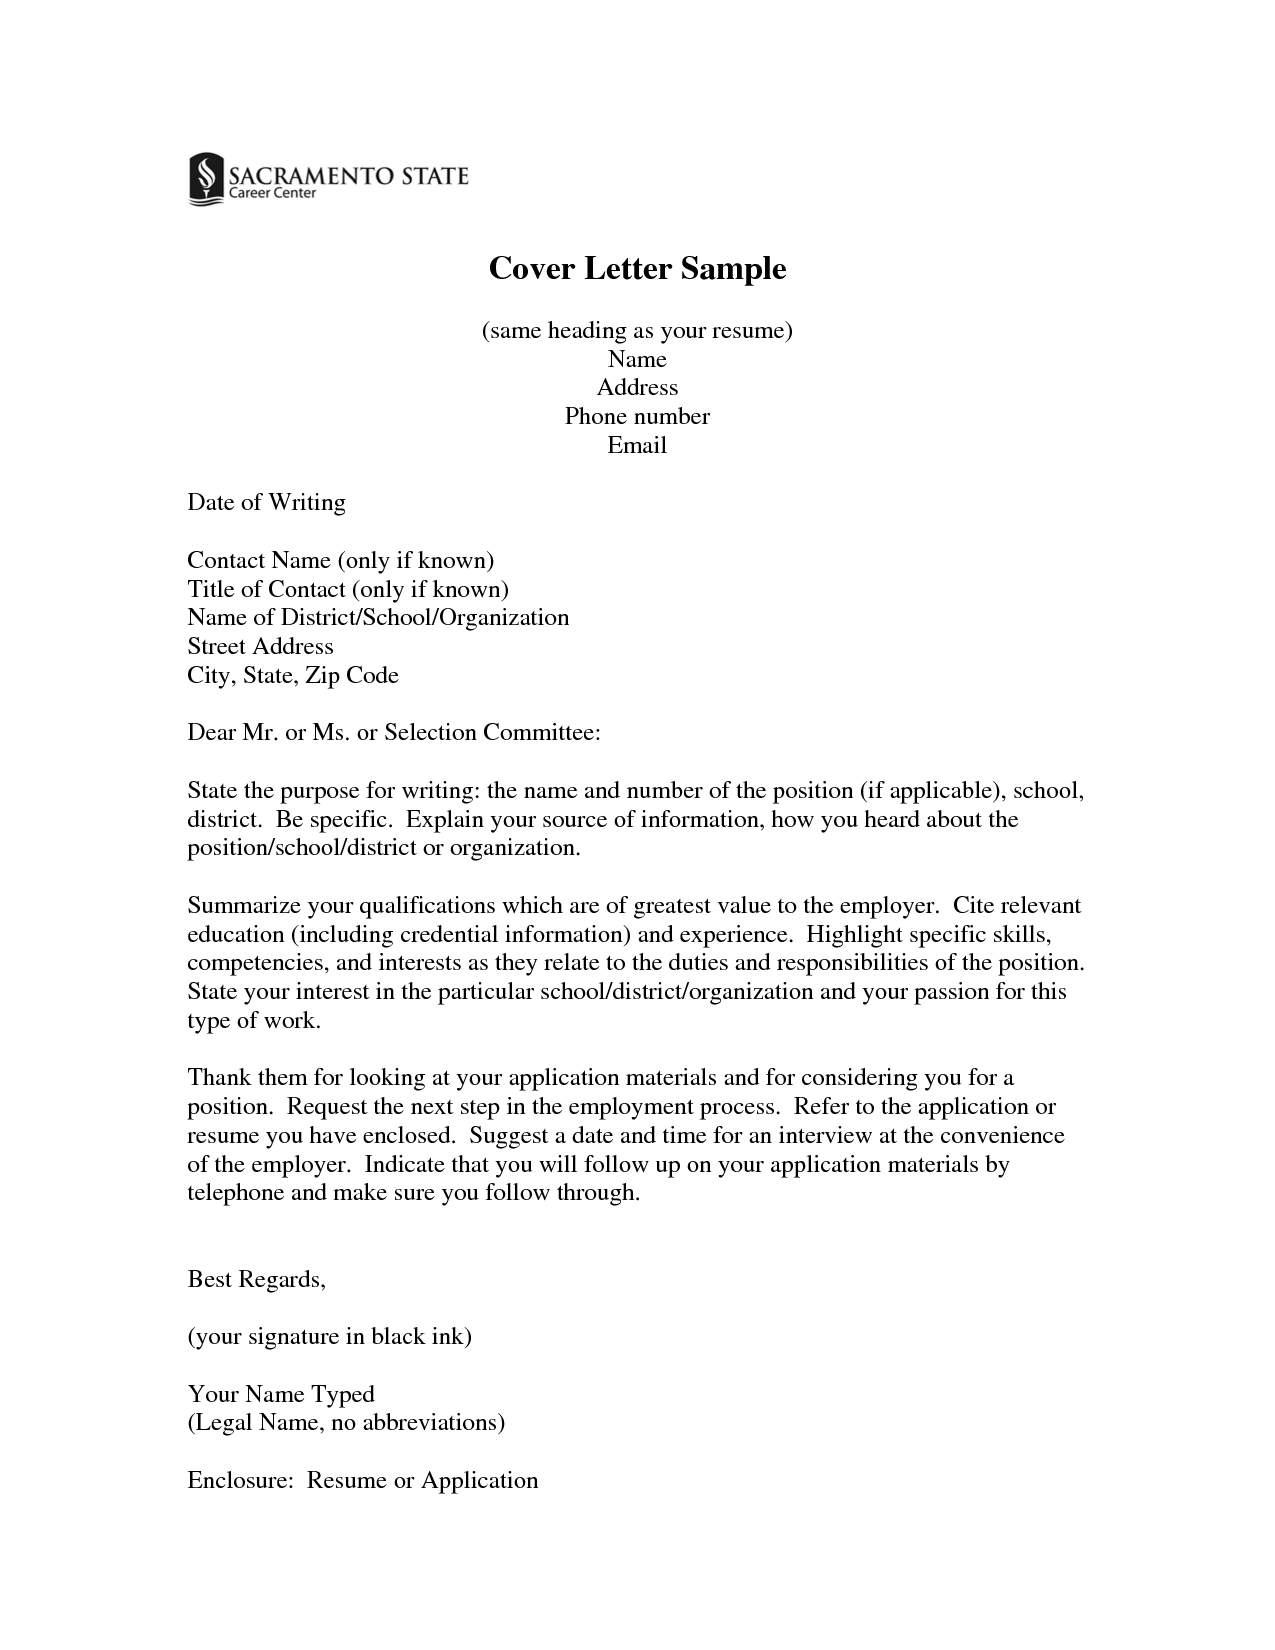 Same cover letters for resume cover letter sample same heading as same cover letters for resume cover letter sample same heading as your resume name address thecheapjerseys Gallery